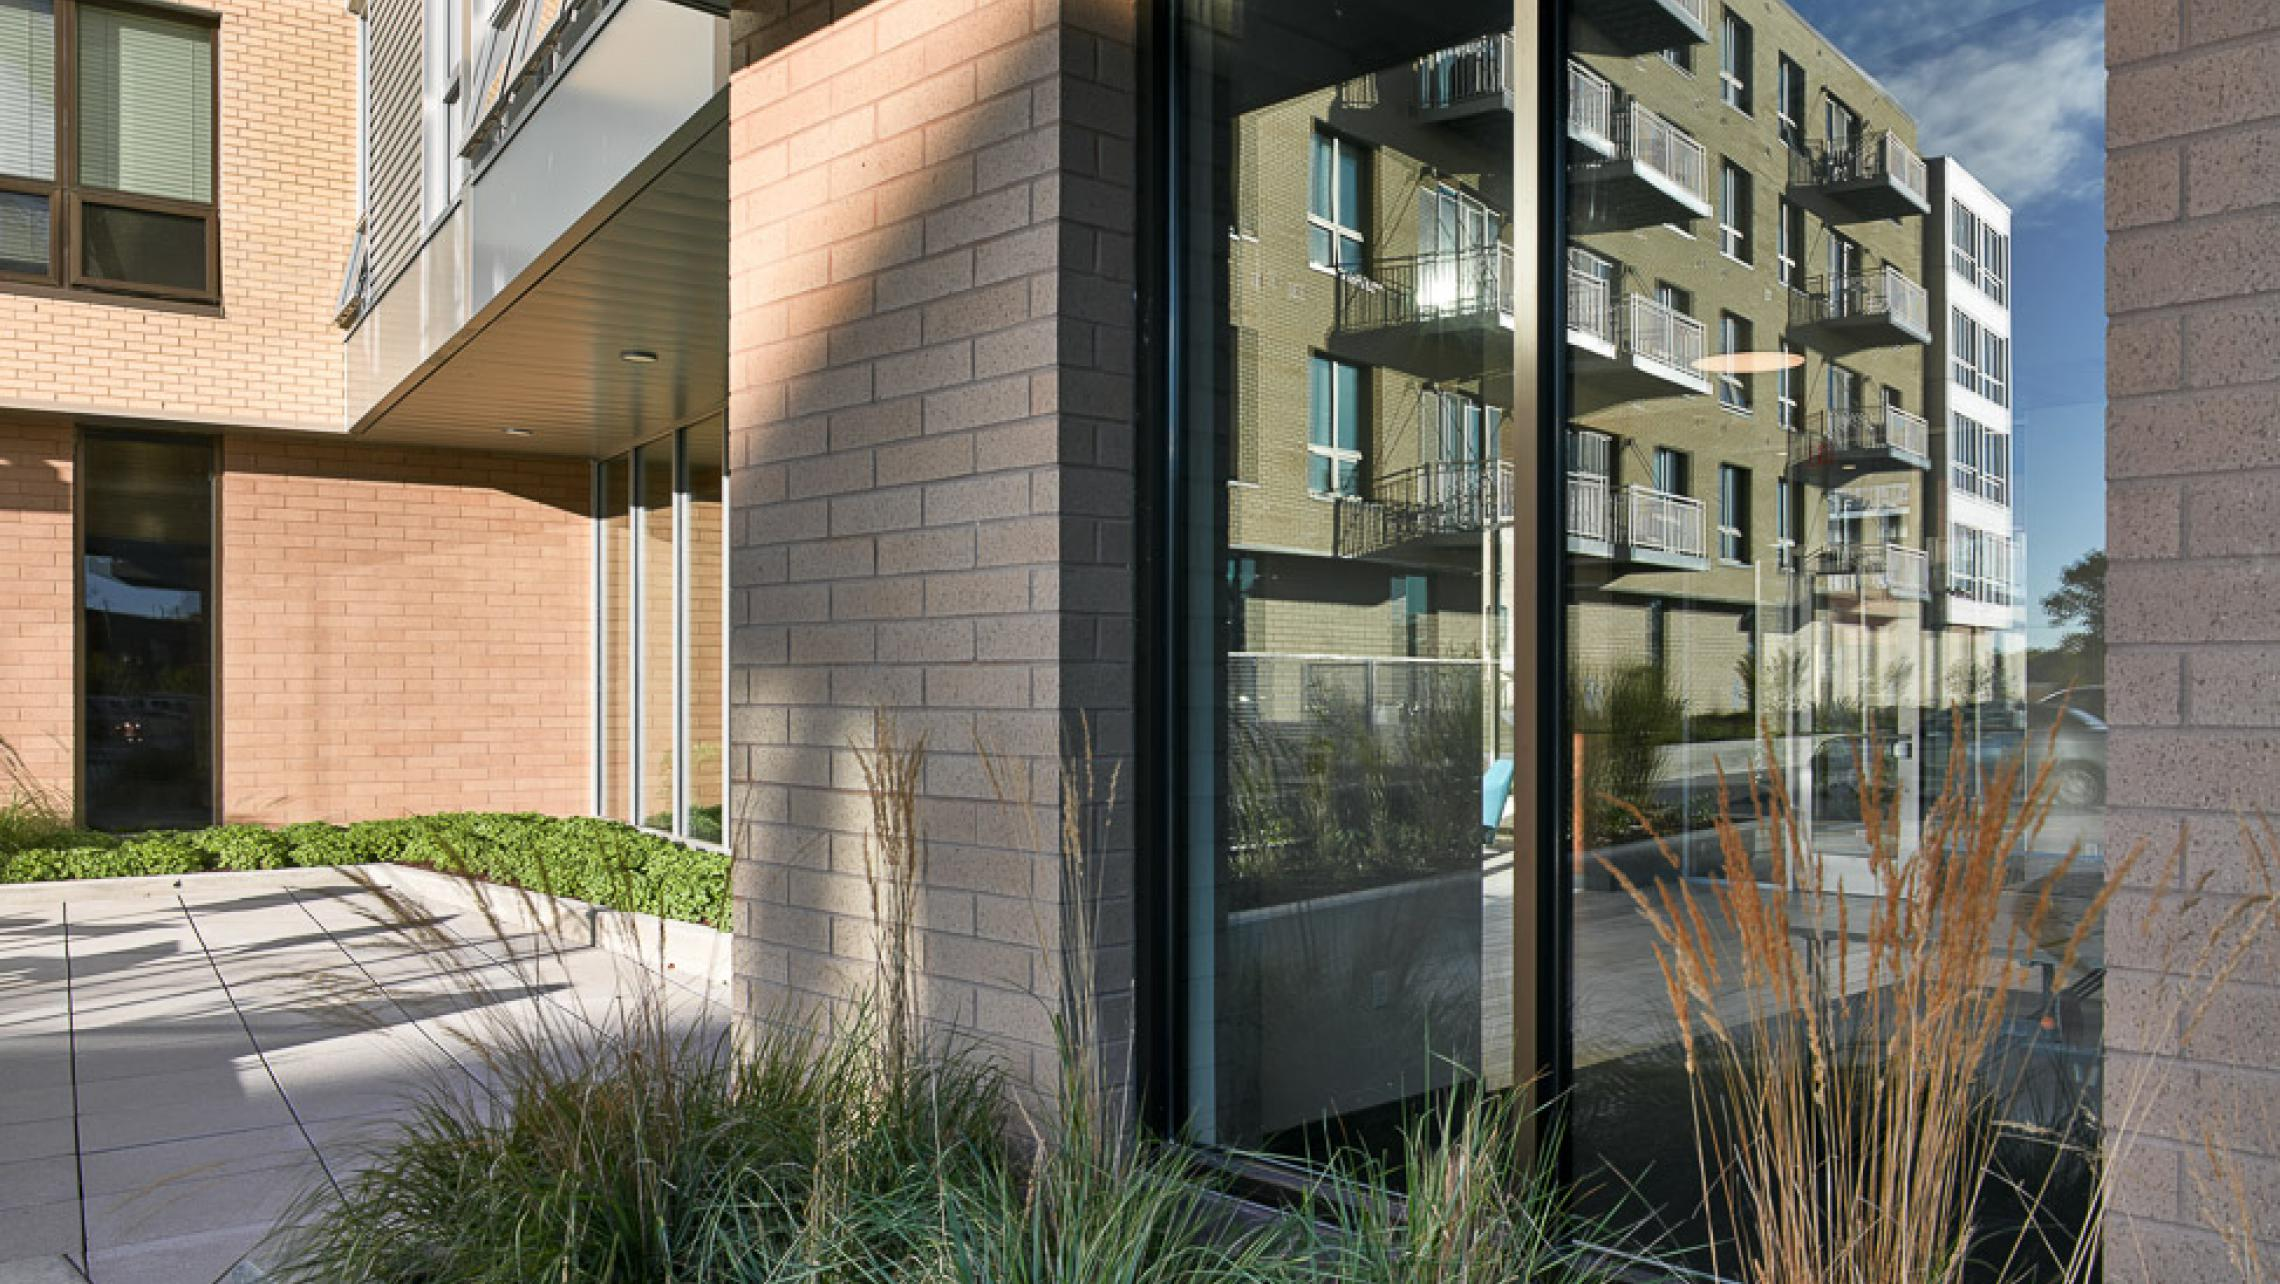 ULI Nine Line Apartments - Reflections at the Entrance